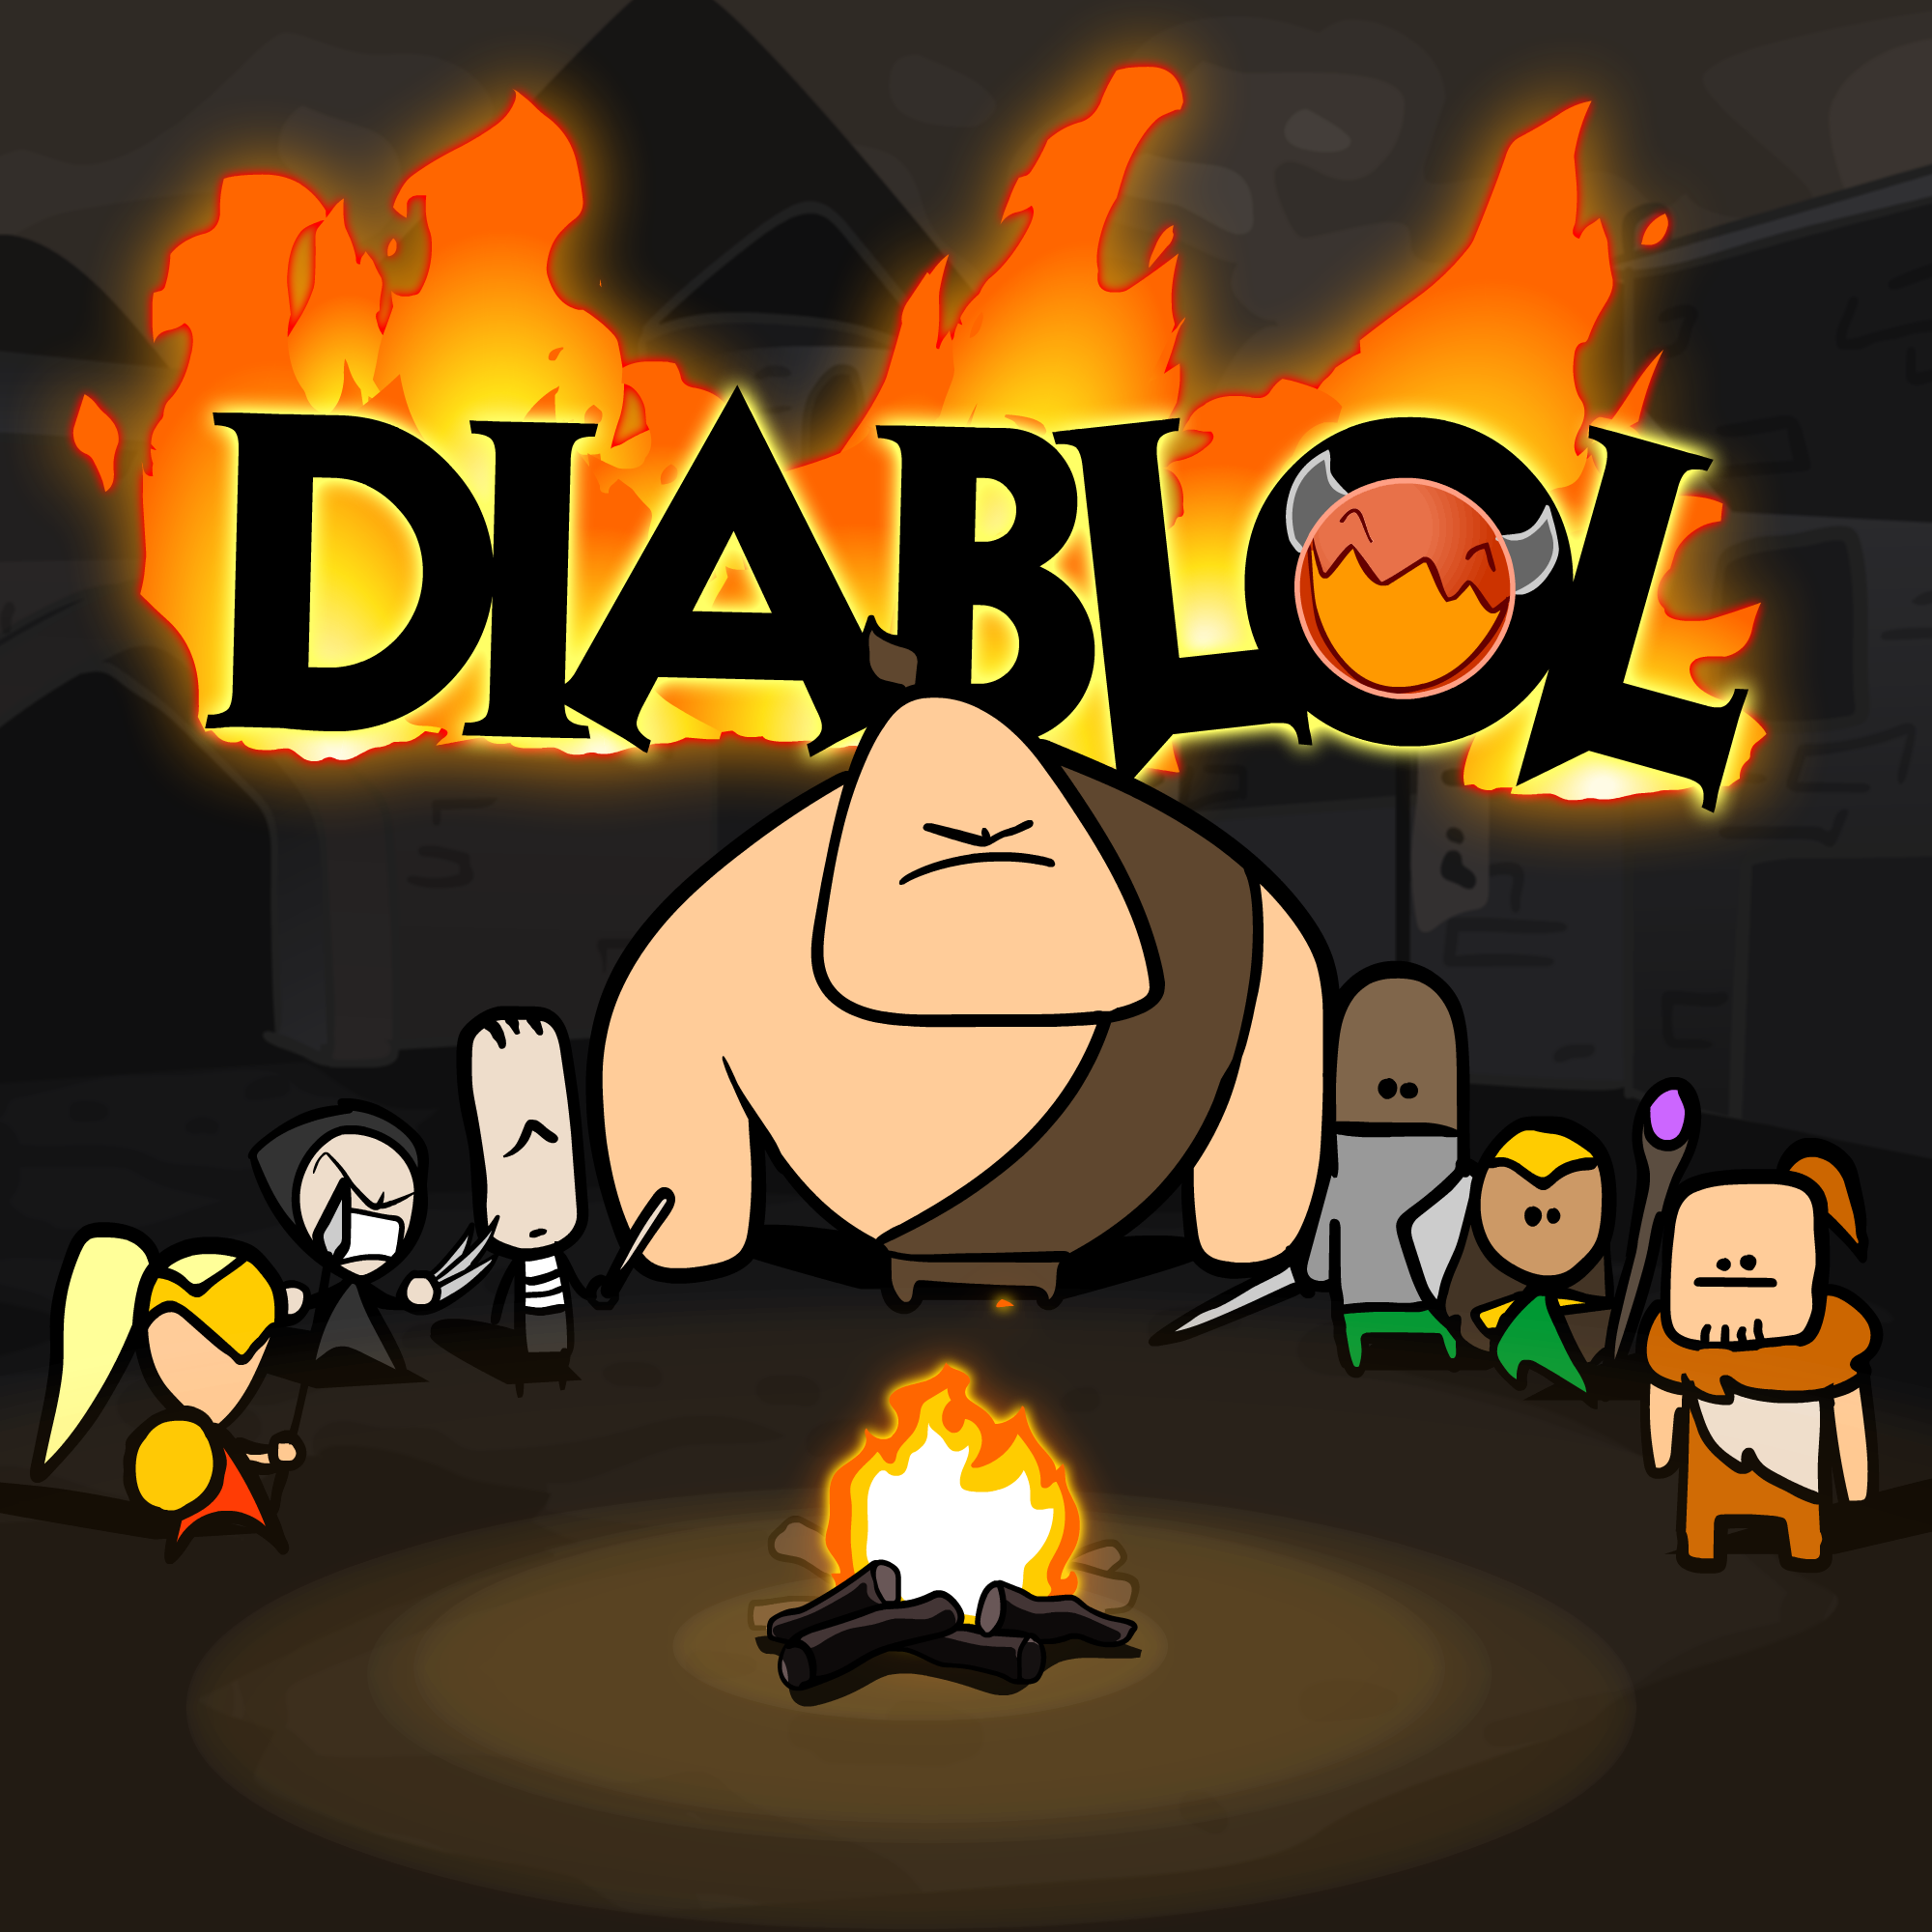 DIABLOL: click the image above to watch